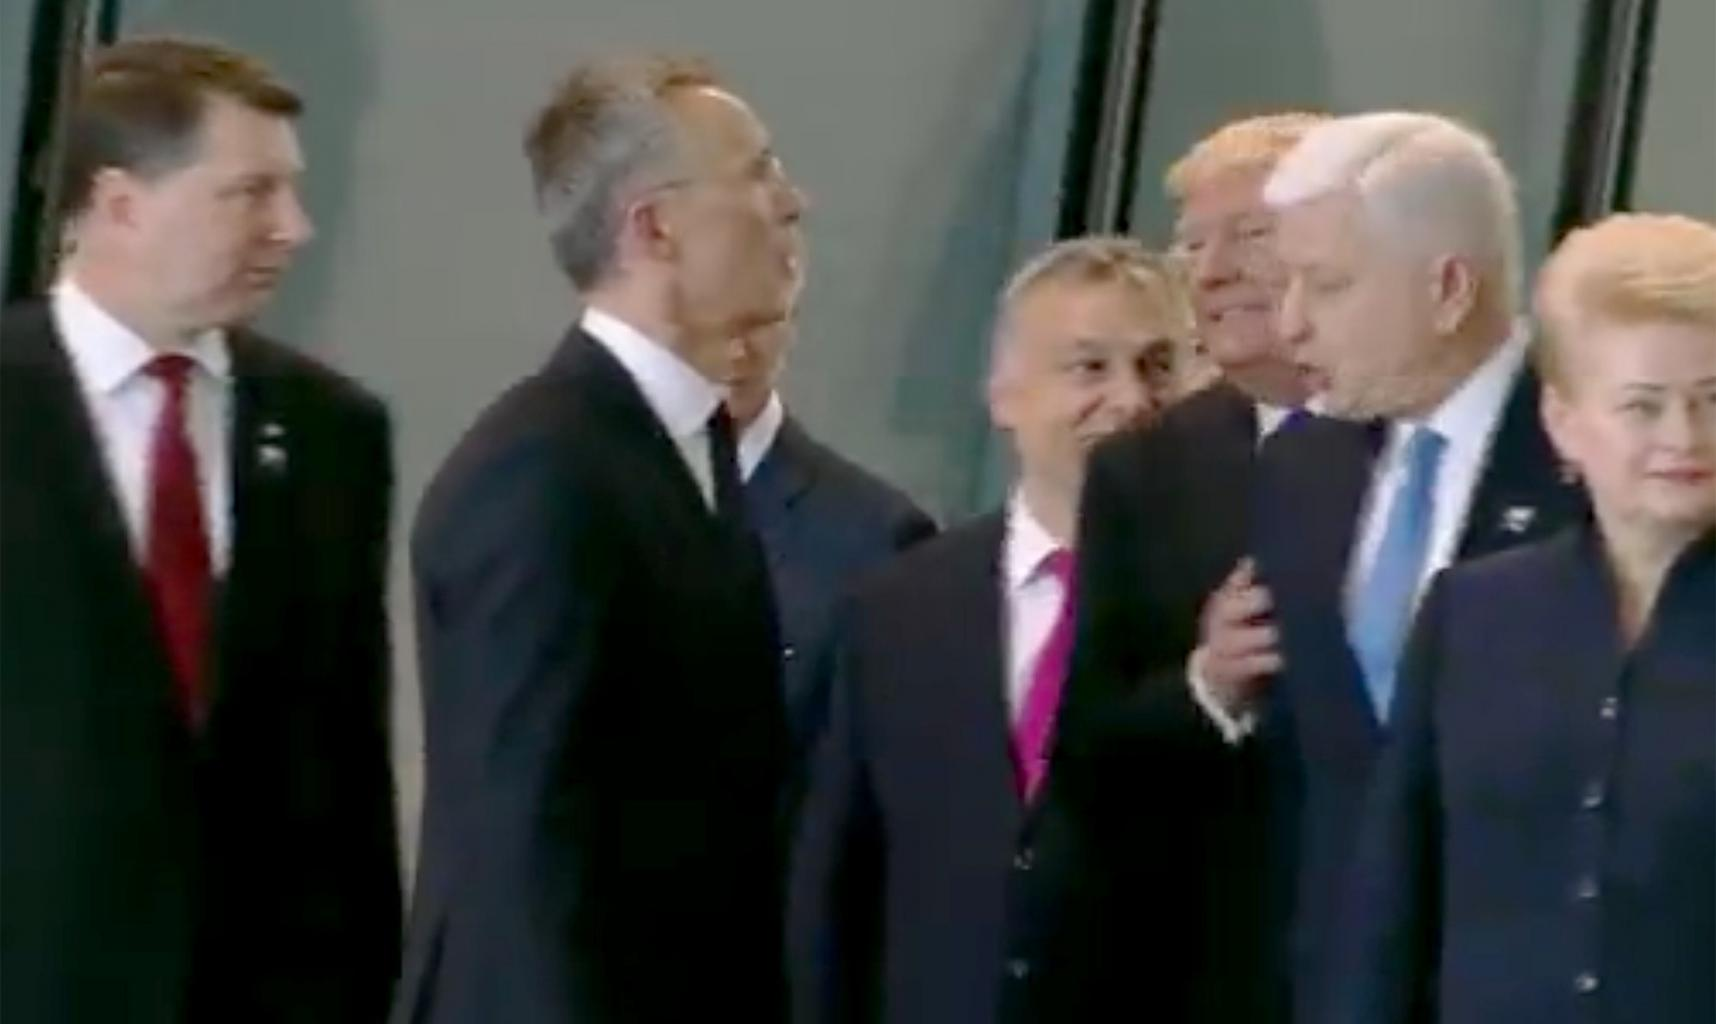 Did President Trump Push a Nato Leader Out of His Way to Be in Front of the Group?